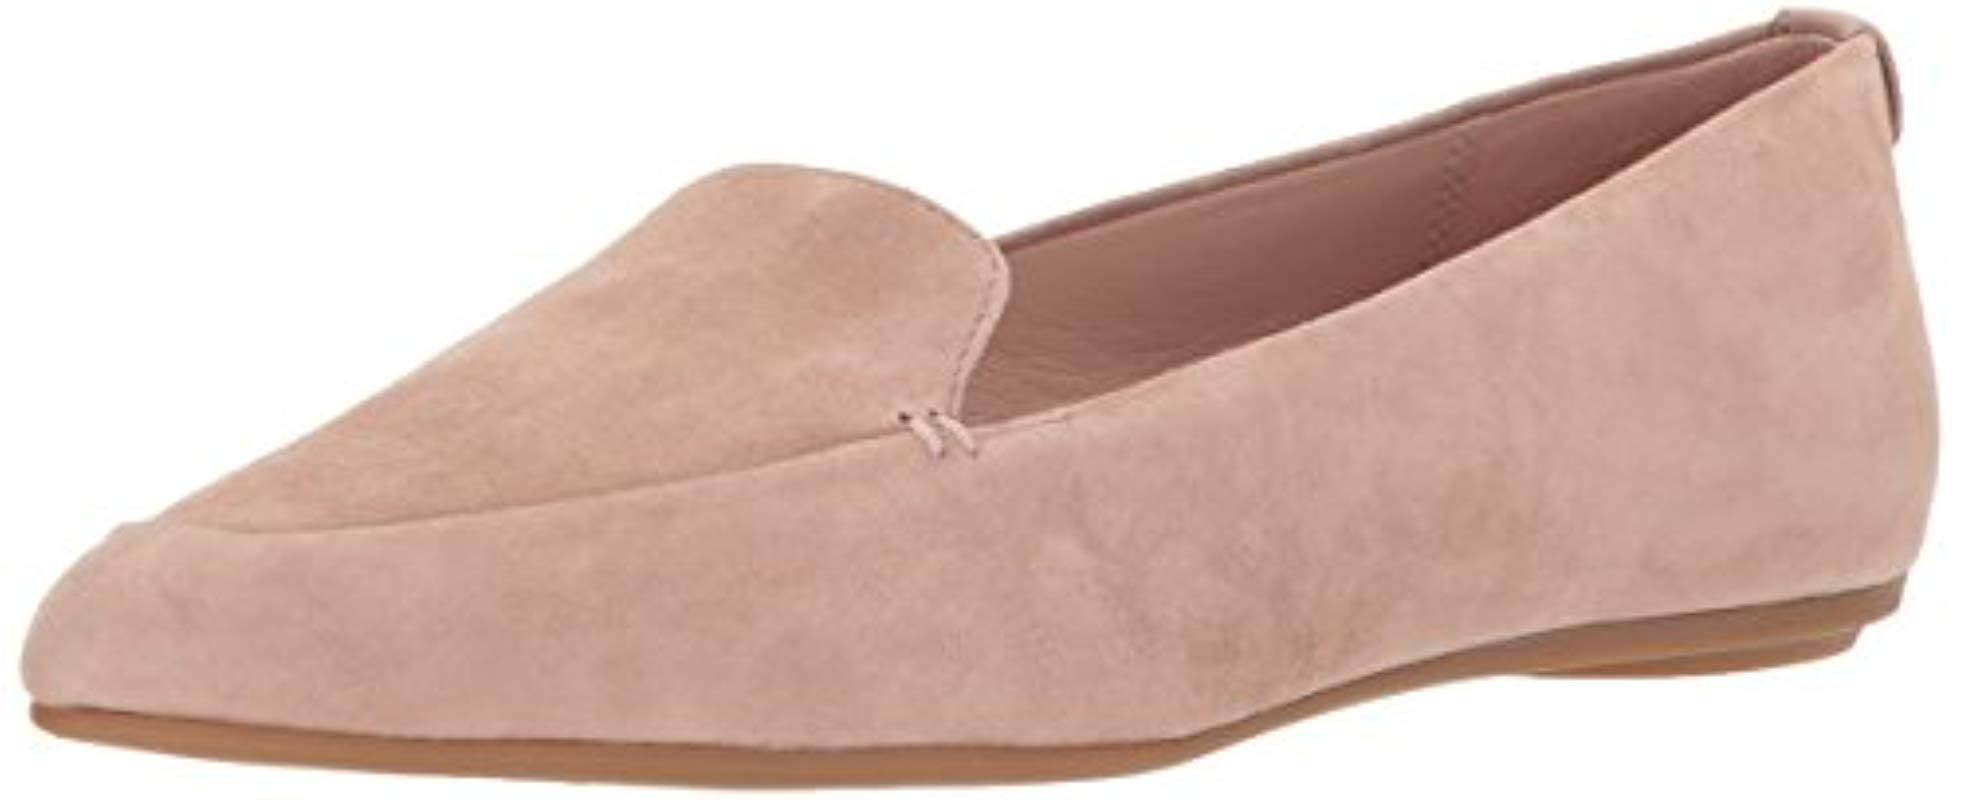 1feb7b4cce3 Lyst - Taryn Rose Faye Silky Suede Loafer Flat in Natural - Save 34%